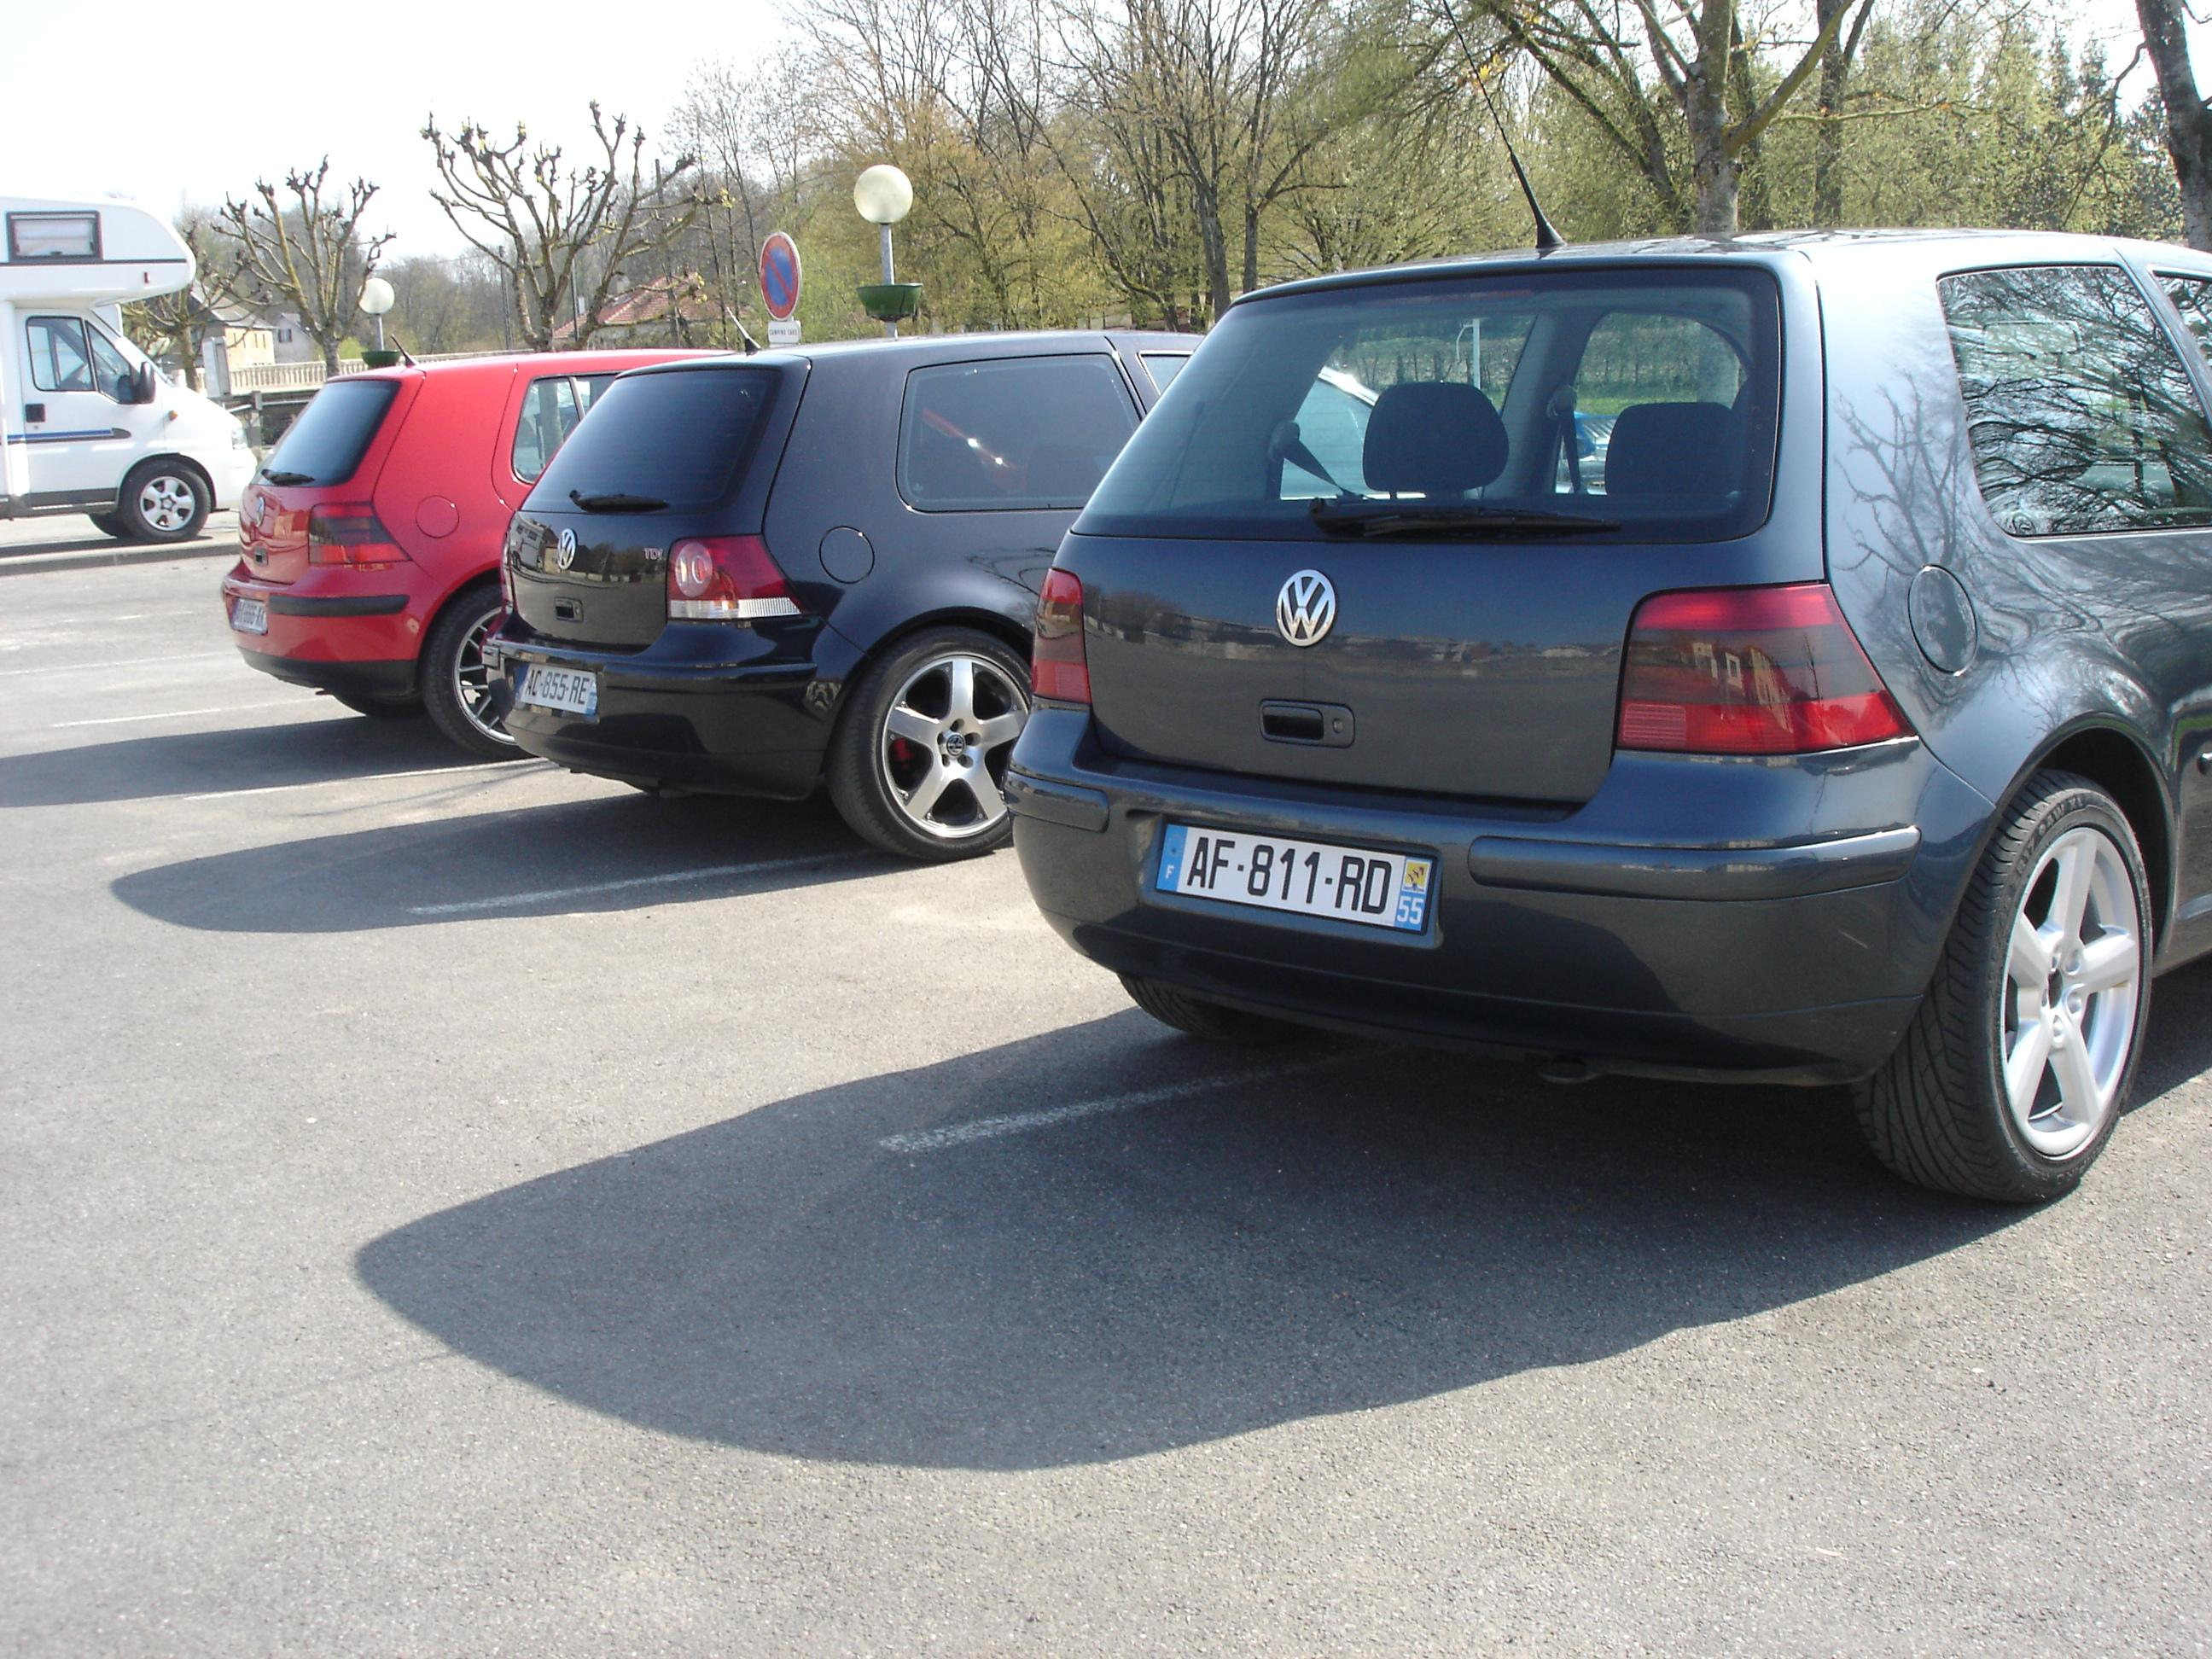 golf gti tdi 150 de partyraiser vendue garage des golf iv tdi 150 page 8 forum volkswagen. Black Bedroom Furniture Sets. Home Design Ideas